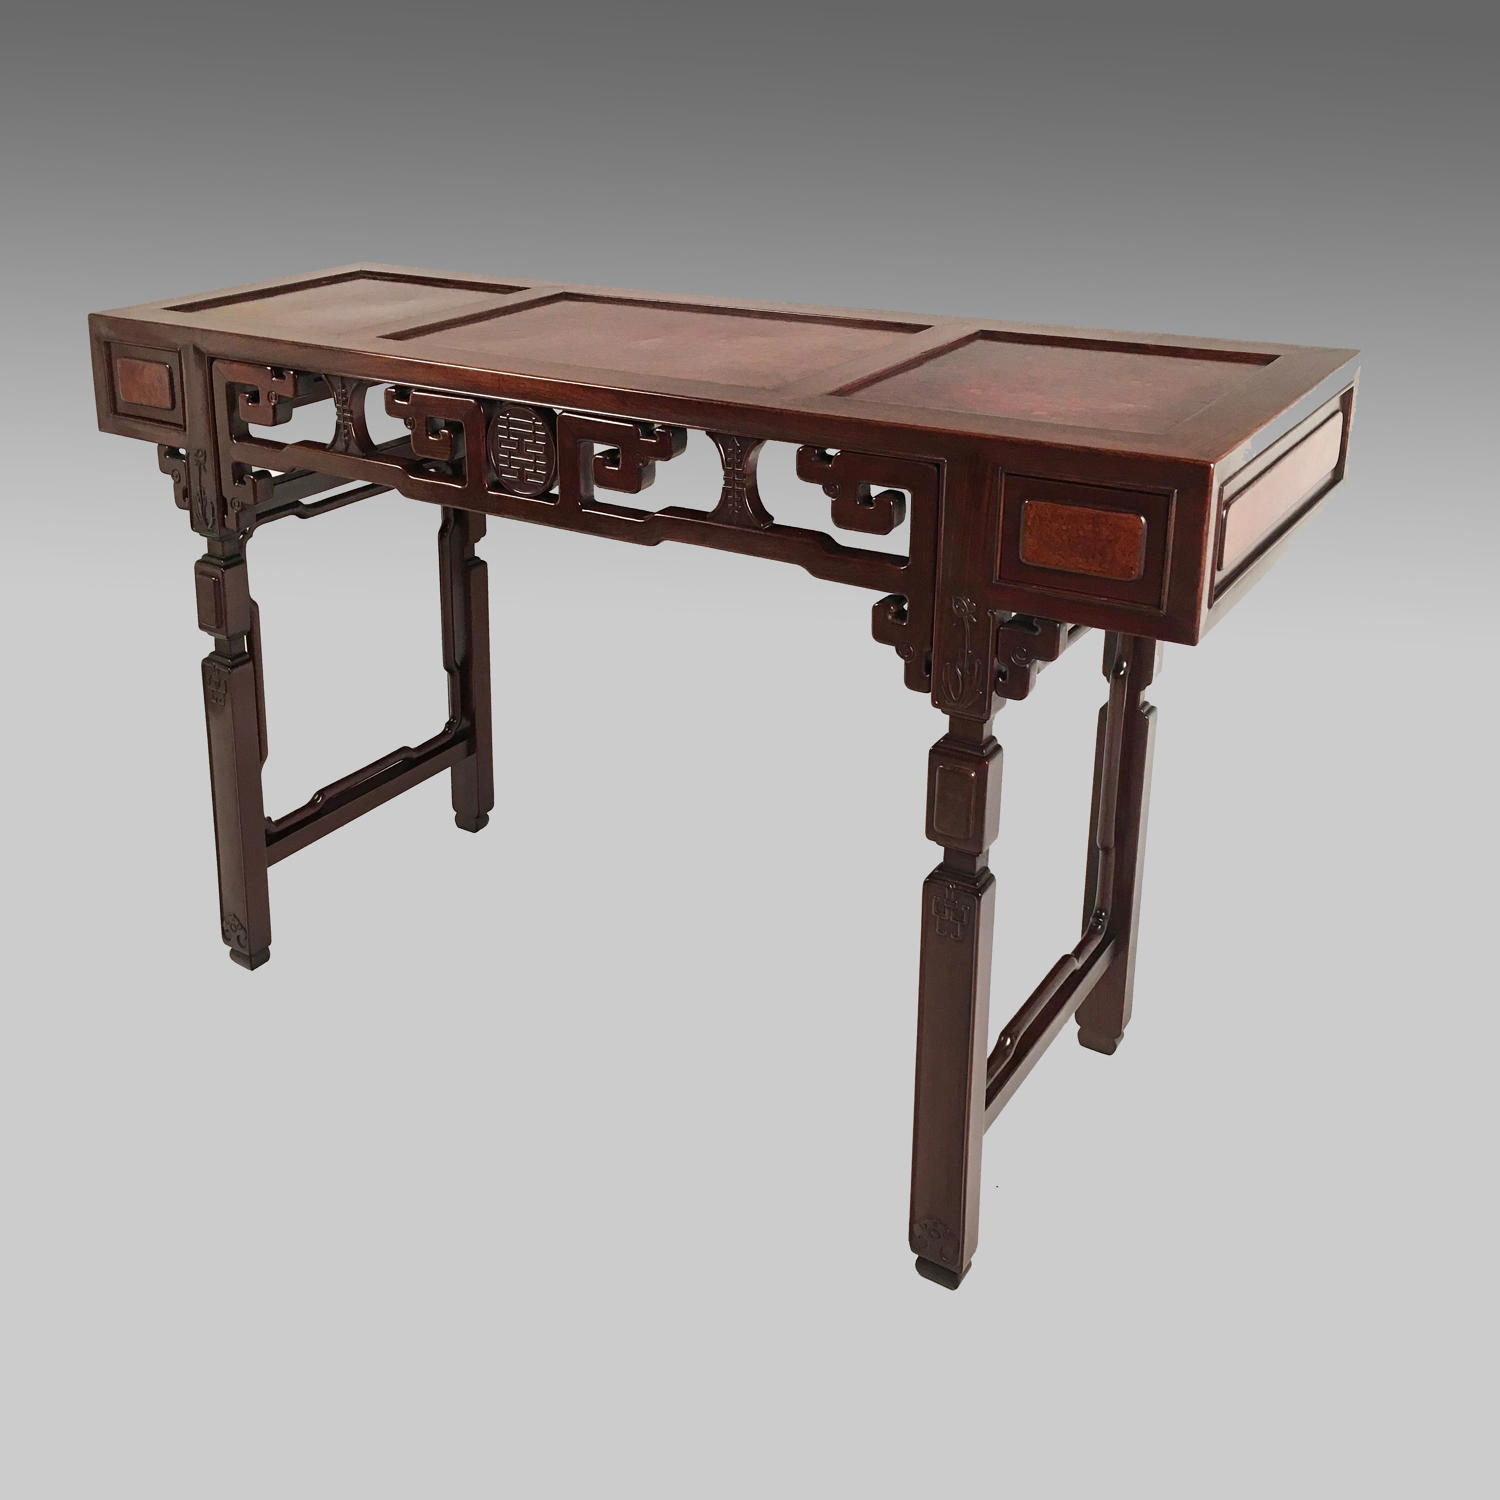 19th century Chinese huanghuali altar table